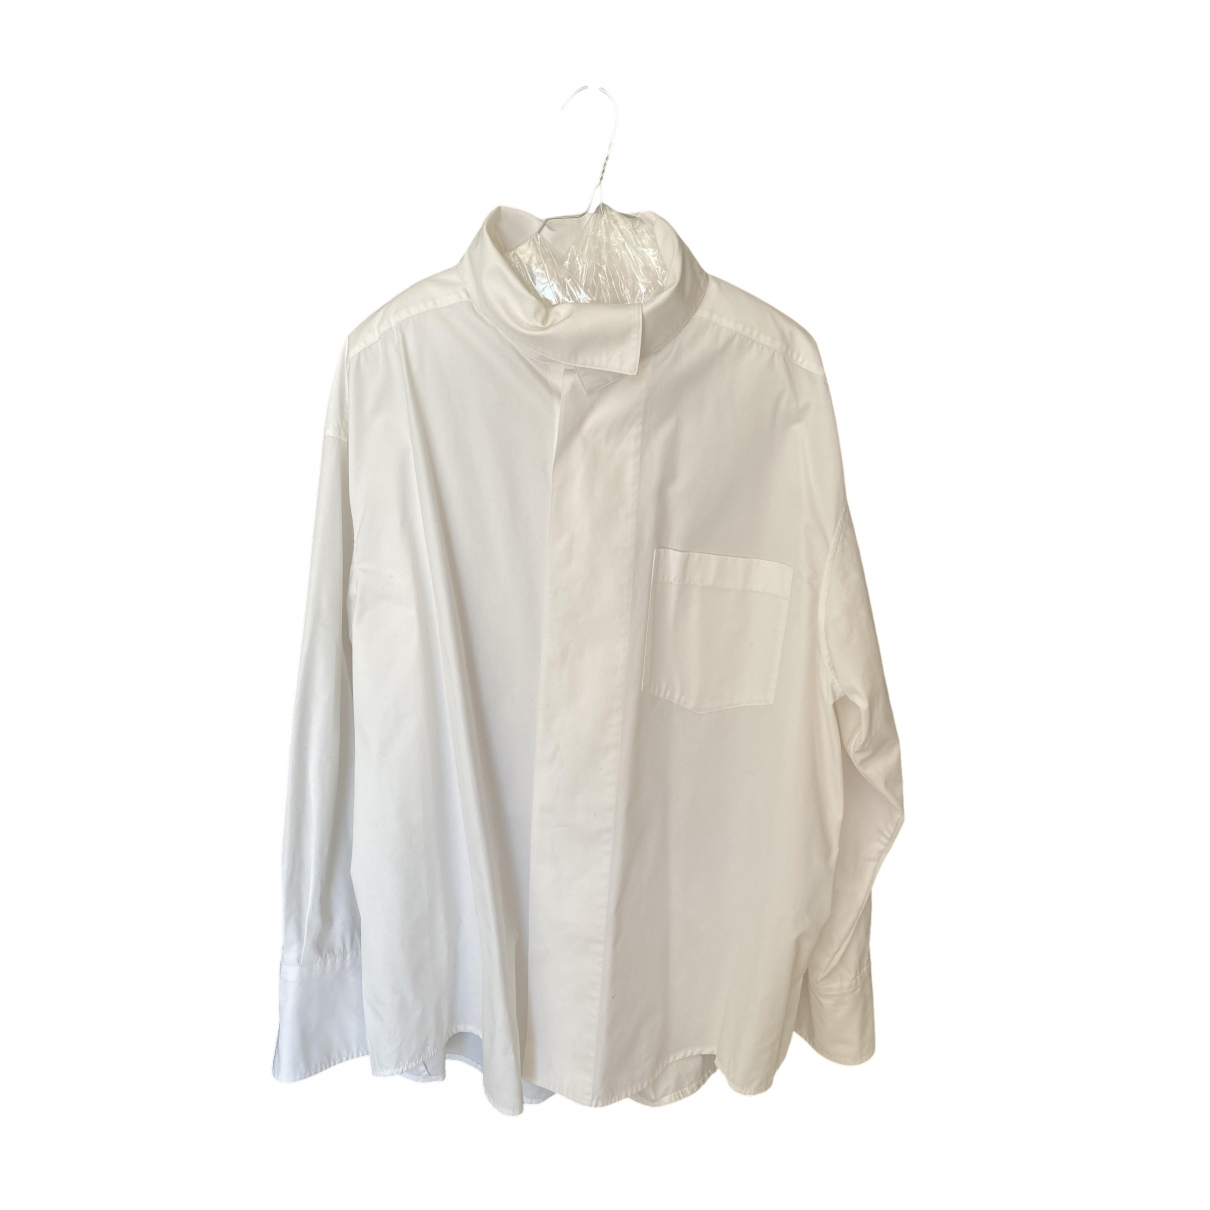 Wooyoungmi \N White Cotton Shirts for Men M International